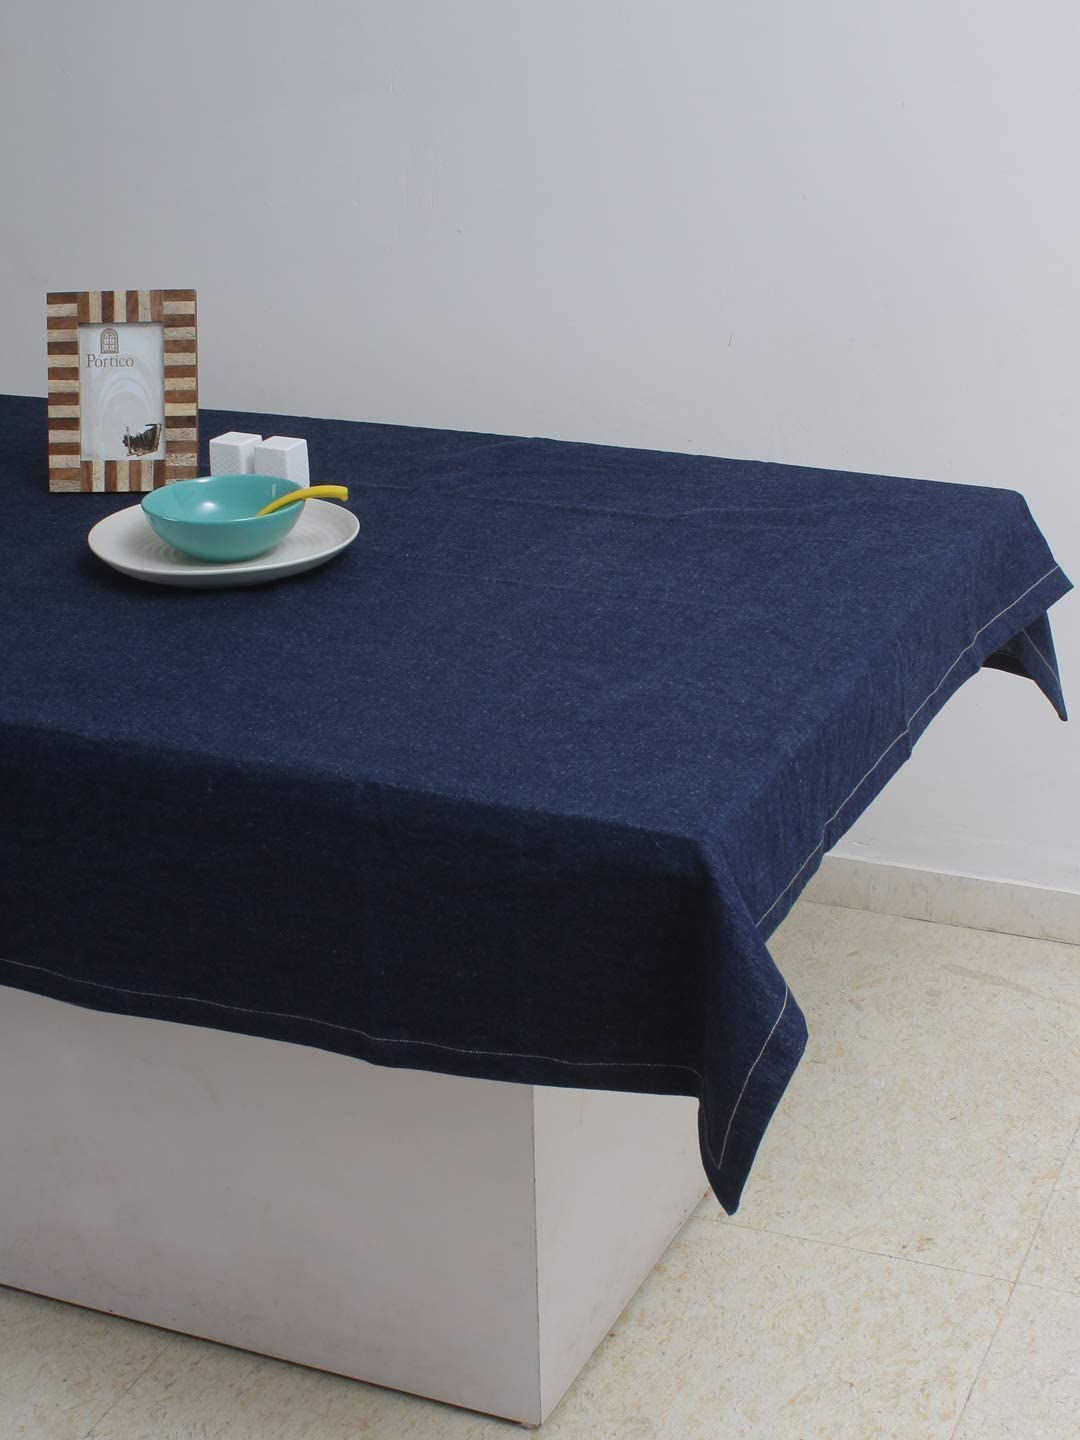 AZ New life COLLECTION Tablecloth Denim Blue Summer Special Campaign Used Spring for